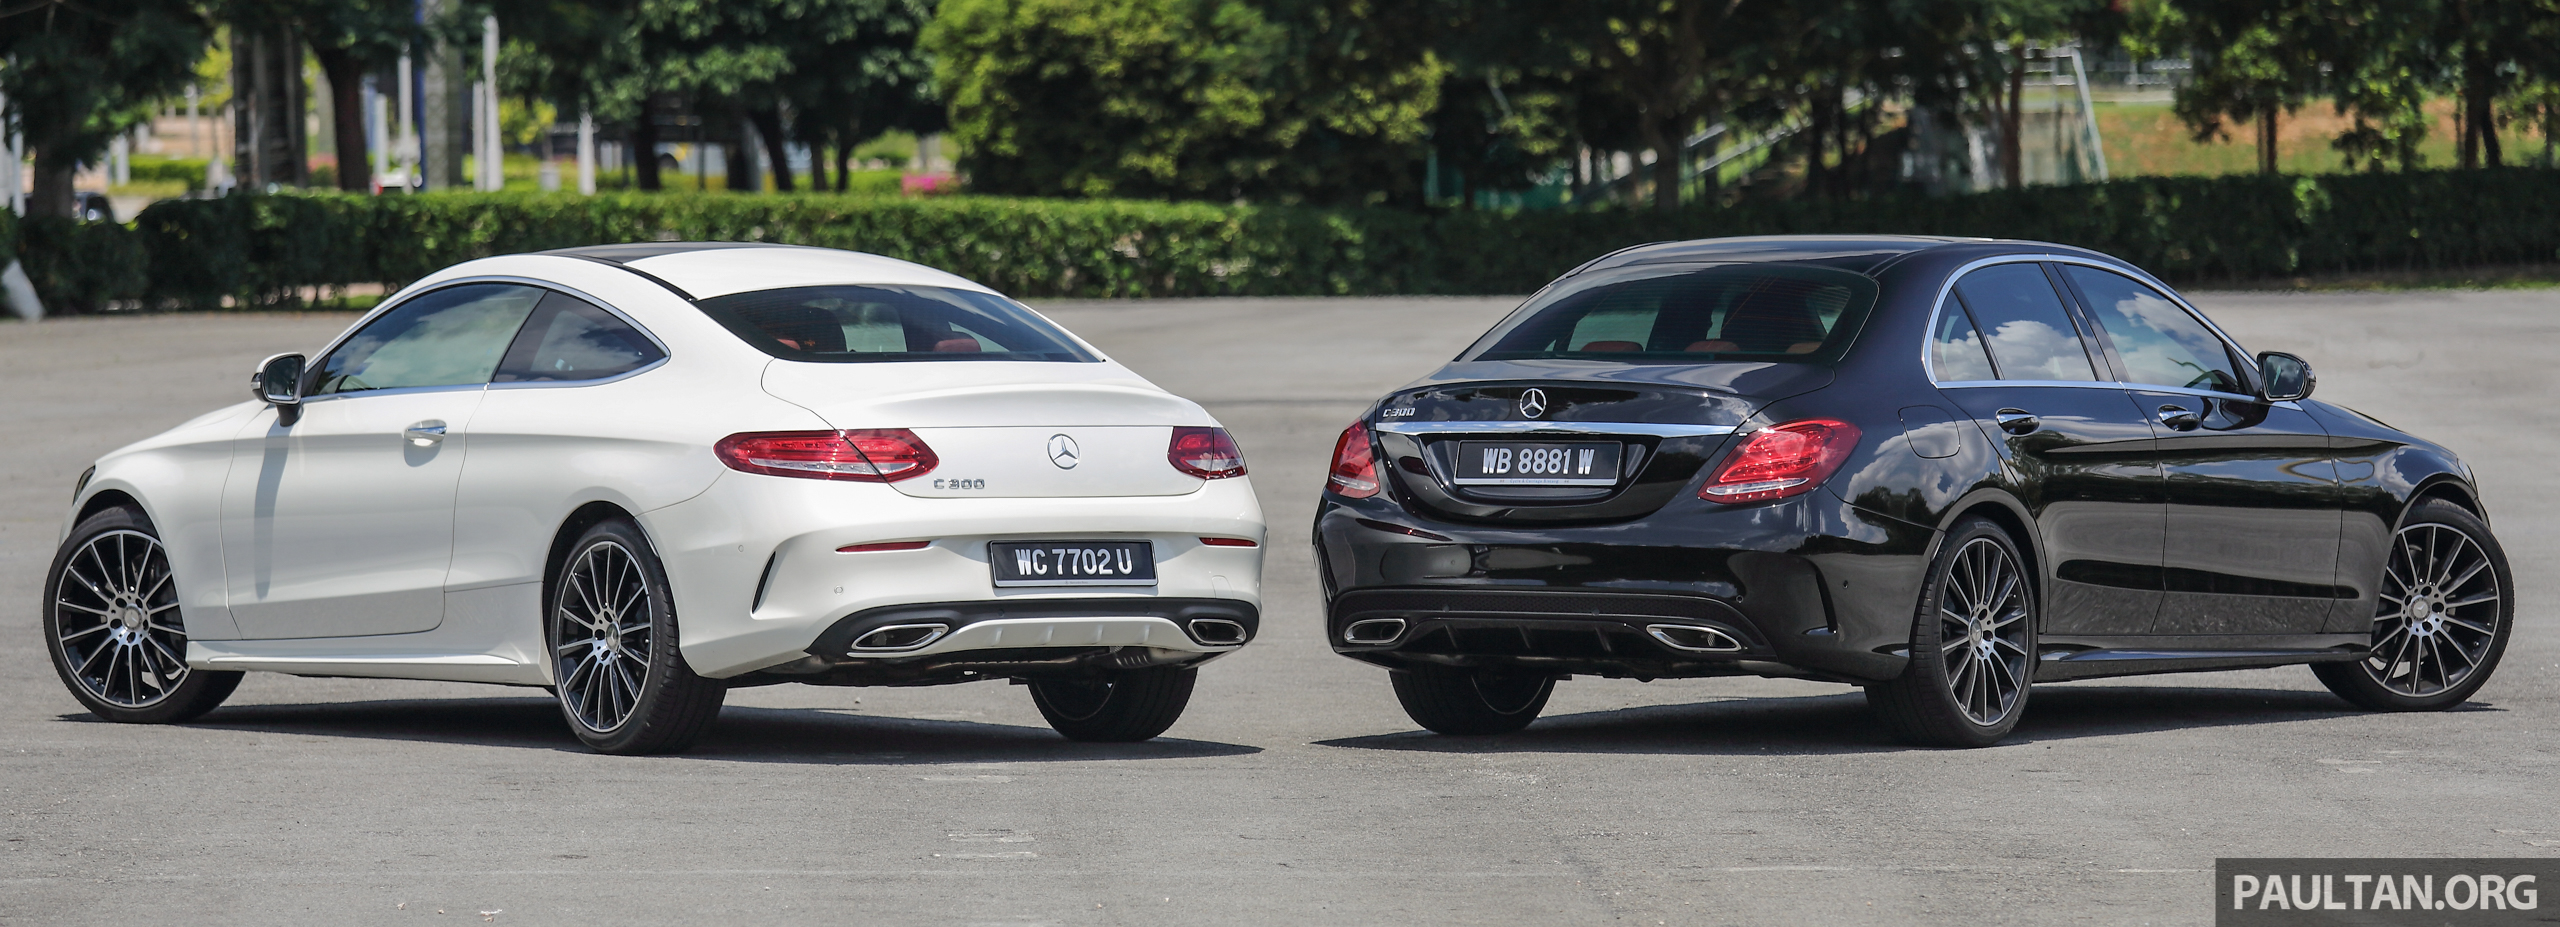 Gallery Mercedes Benz C300 Coupe Vs Sedan Image 495917